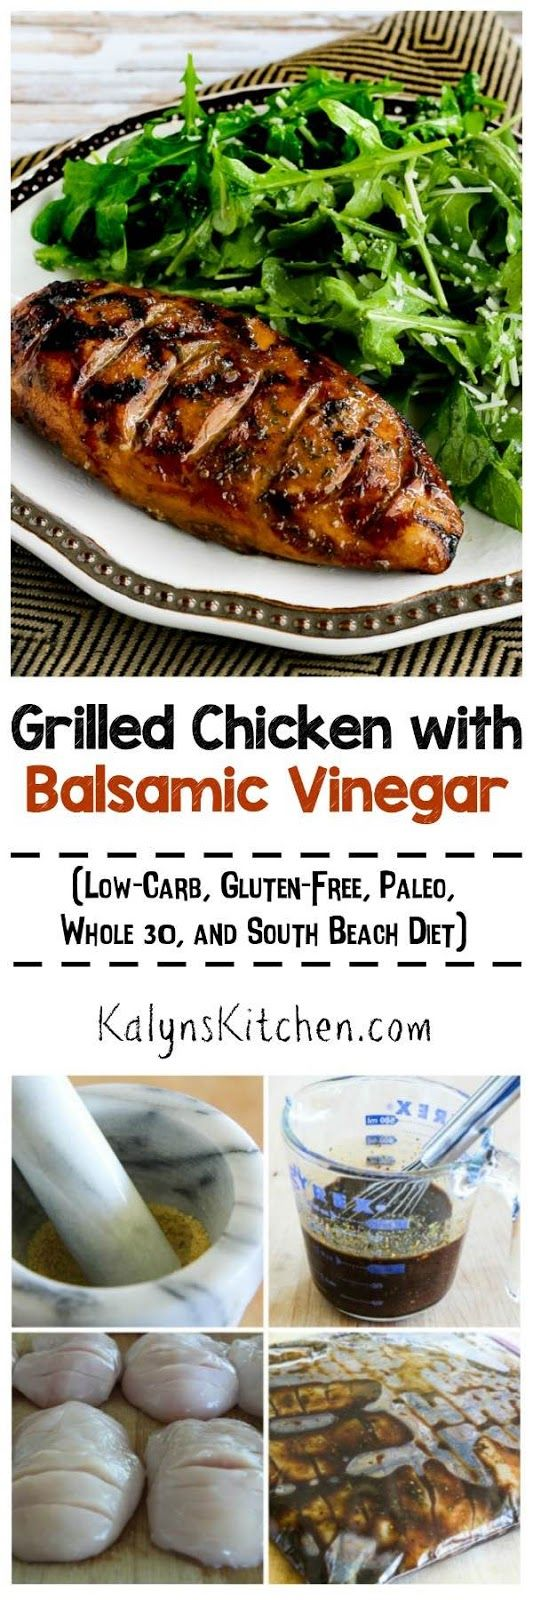 This tasty Grilled Chicken with Balsamic Vinegar is a recipe I've been making for years, and it's low-carb, gluten-free, Paleo, Whole 30, and South Beach Diet friendly! [found on KalynsKitchen.com]